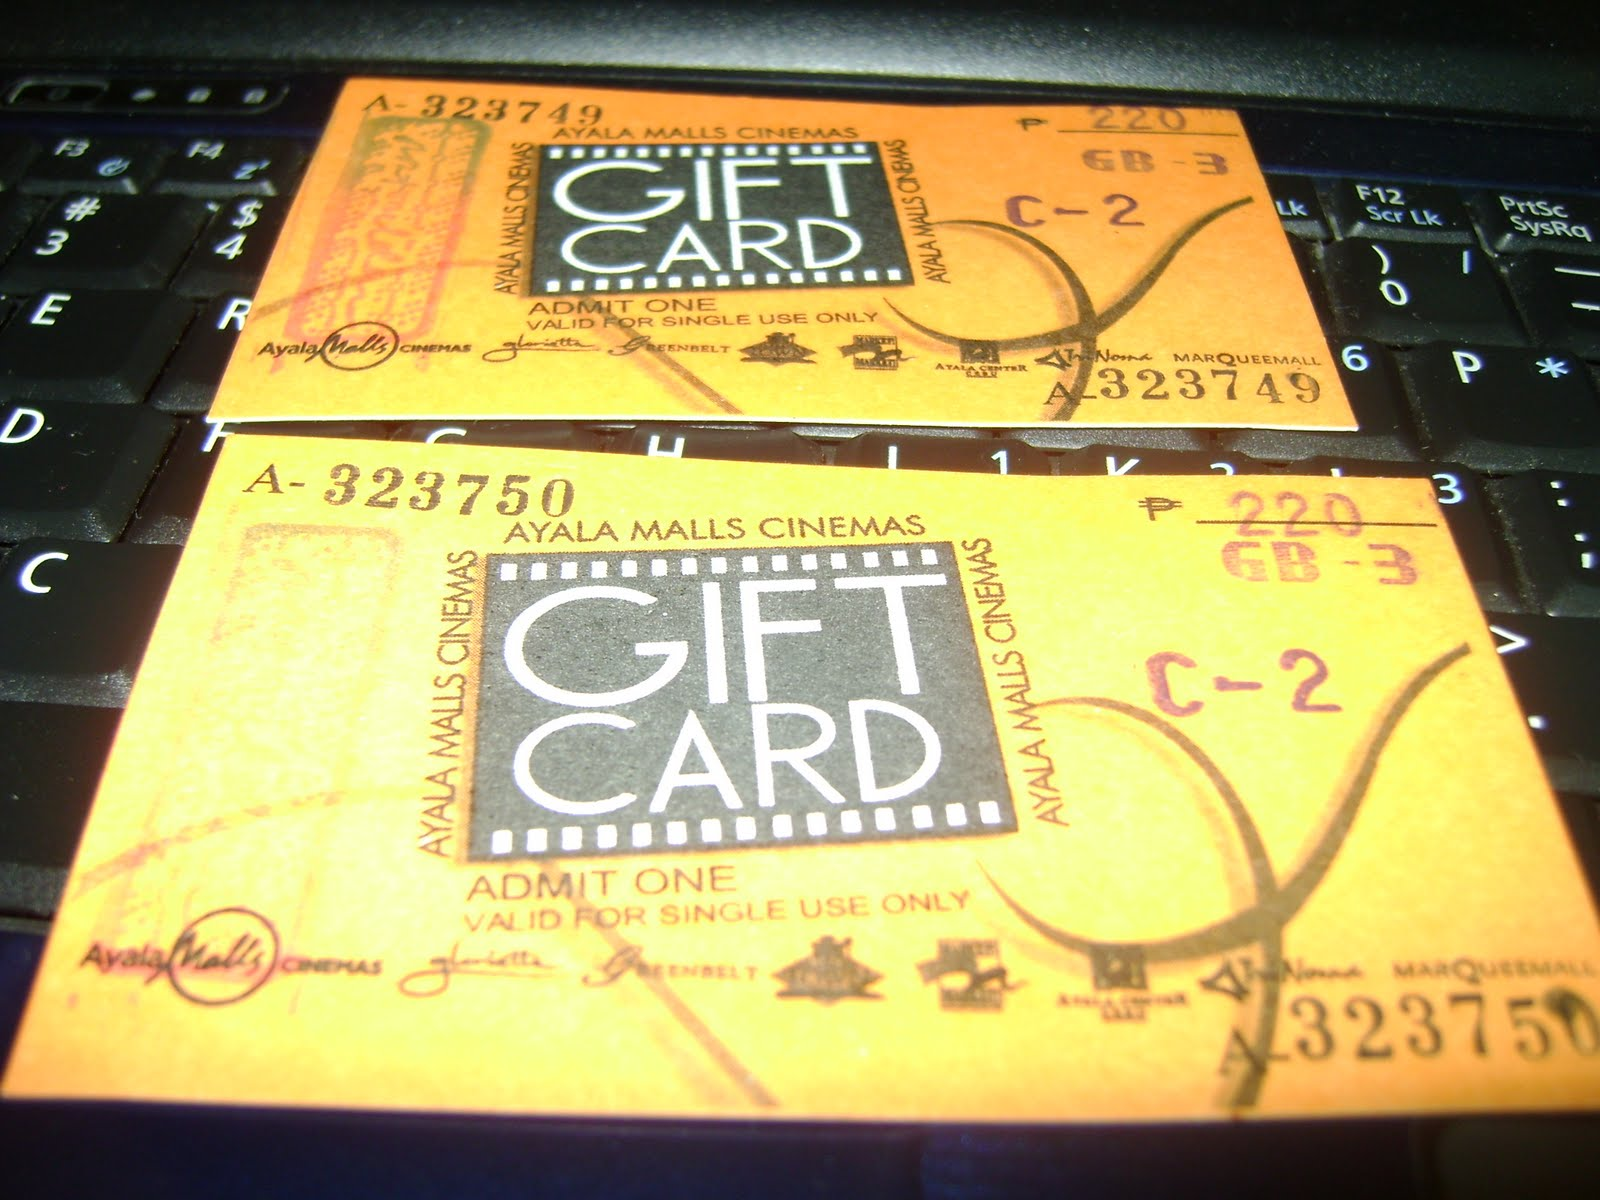 Journey to life thank you nuffnang and hapee for the gift cards the gcs is a prize for the blog contest sponsored by nuffnang and hapee with the topic what makes nuffnang and hapee first class xflitez Images